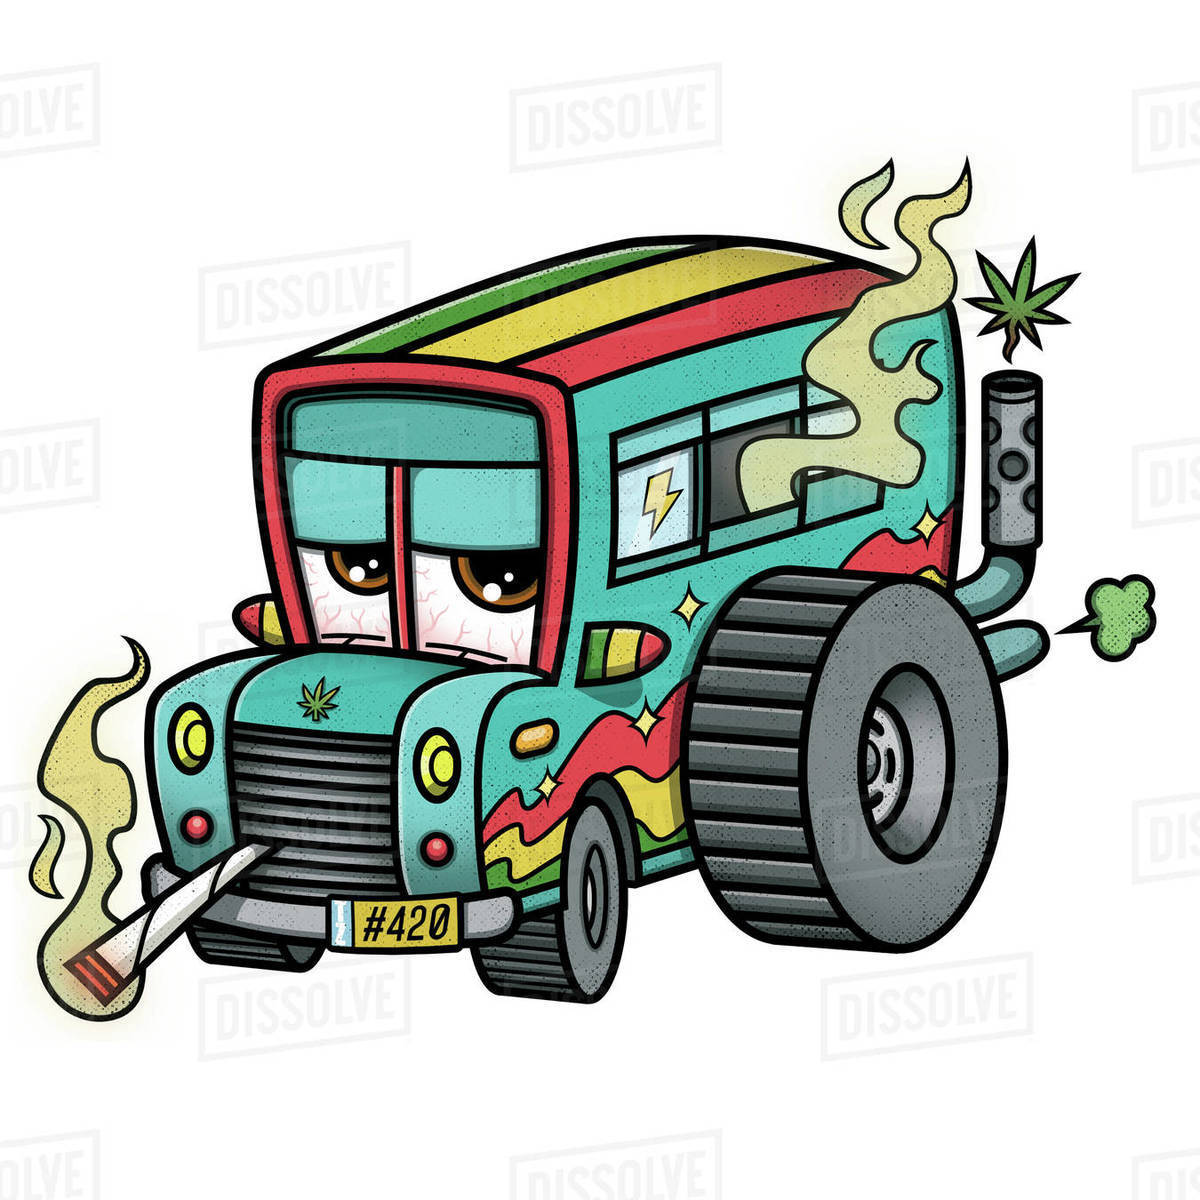 Cartoon illustration of school bus smoking cigarette against white background Royalty-free stock photo